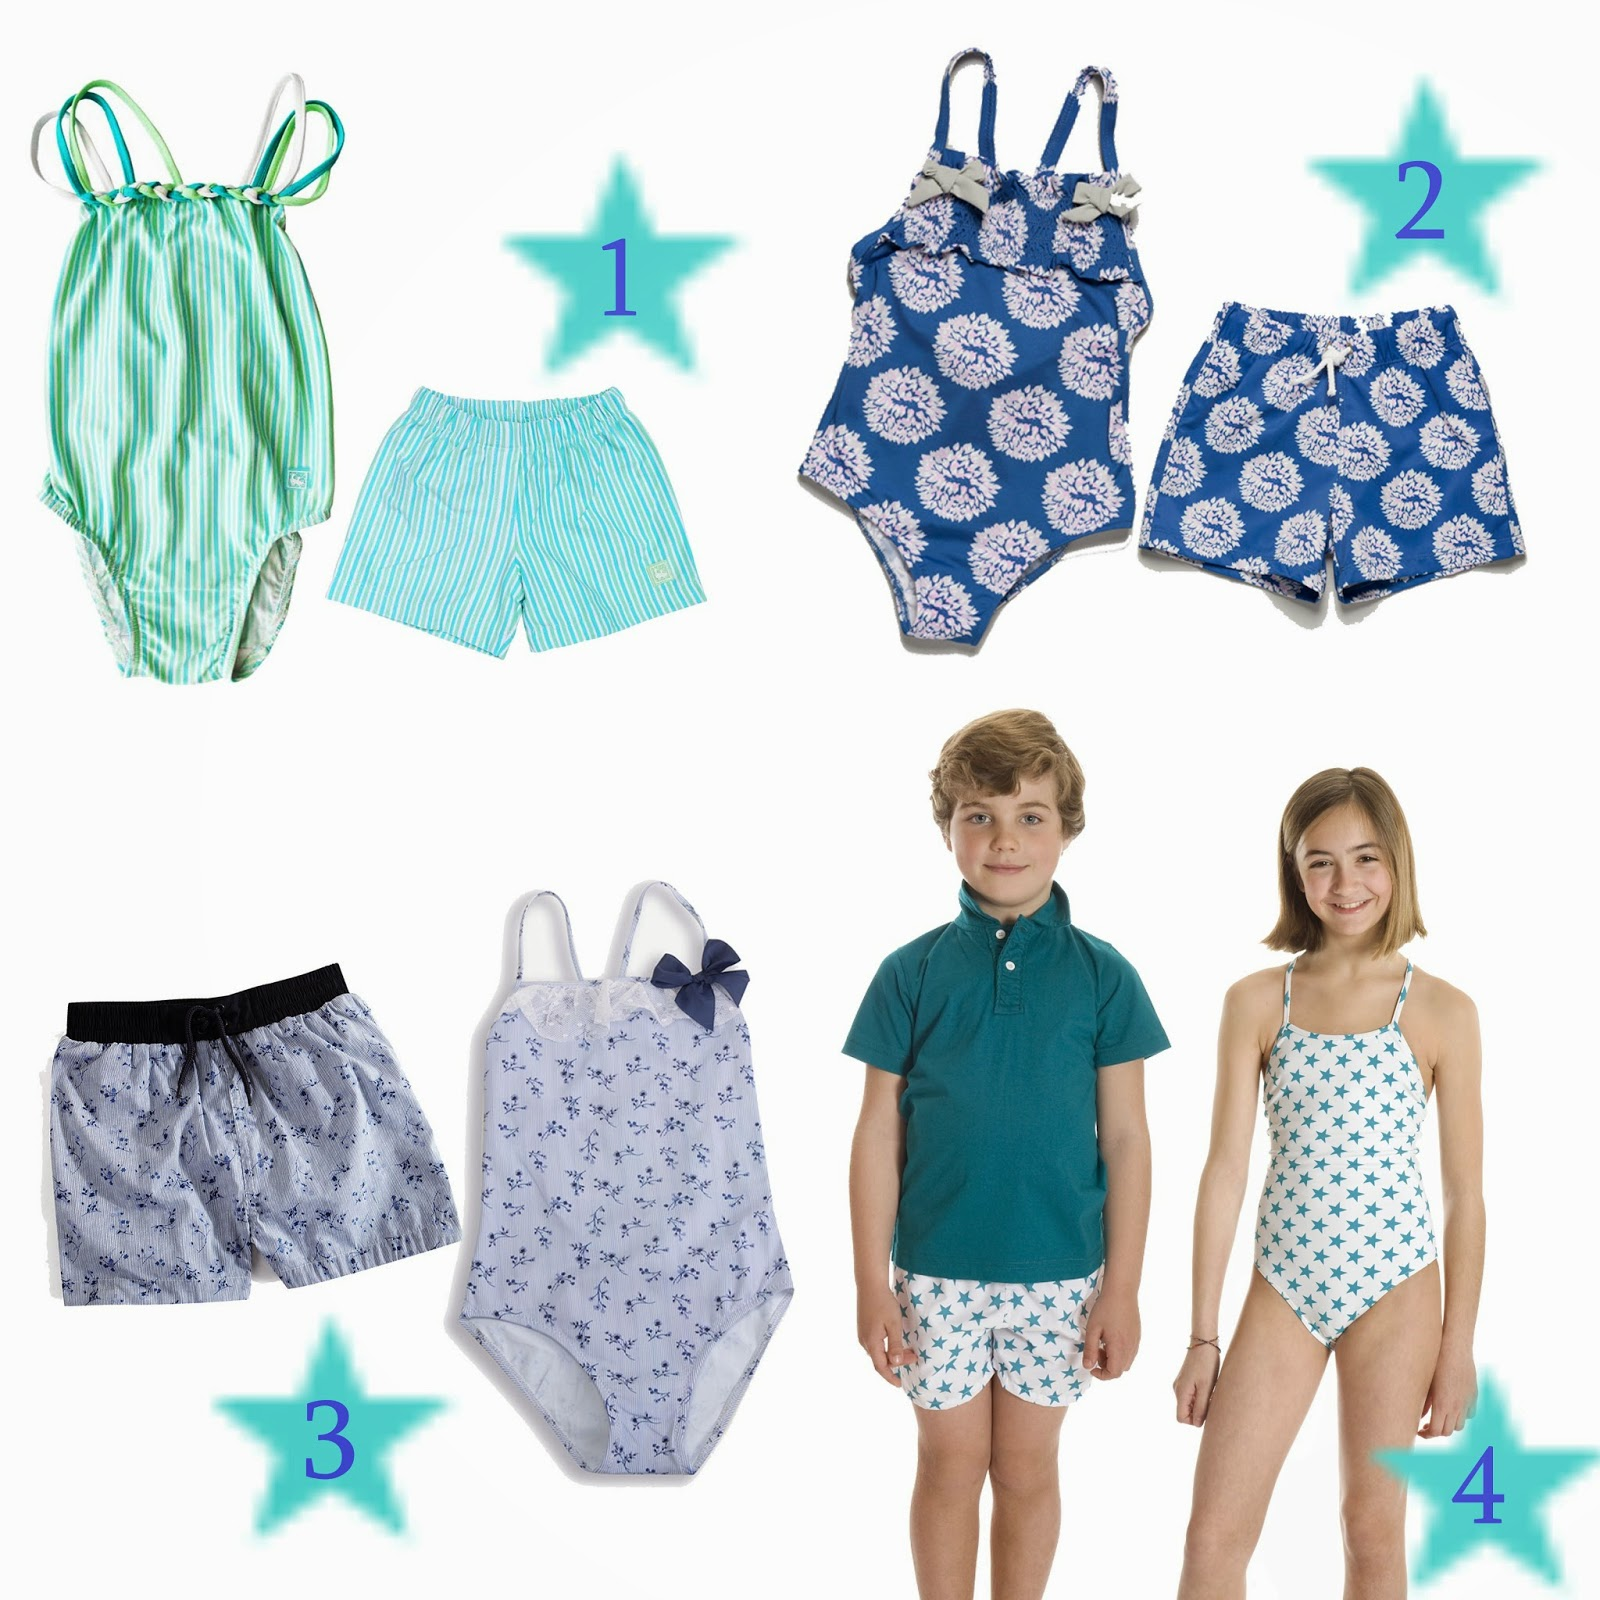 photo-kids-swimsuits-bañadores_niños-2014-nicolete-neck&neck-tizzas-lolilota